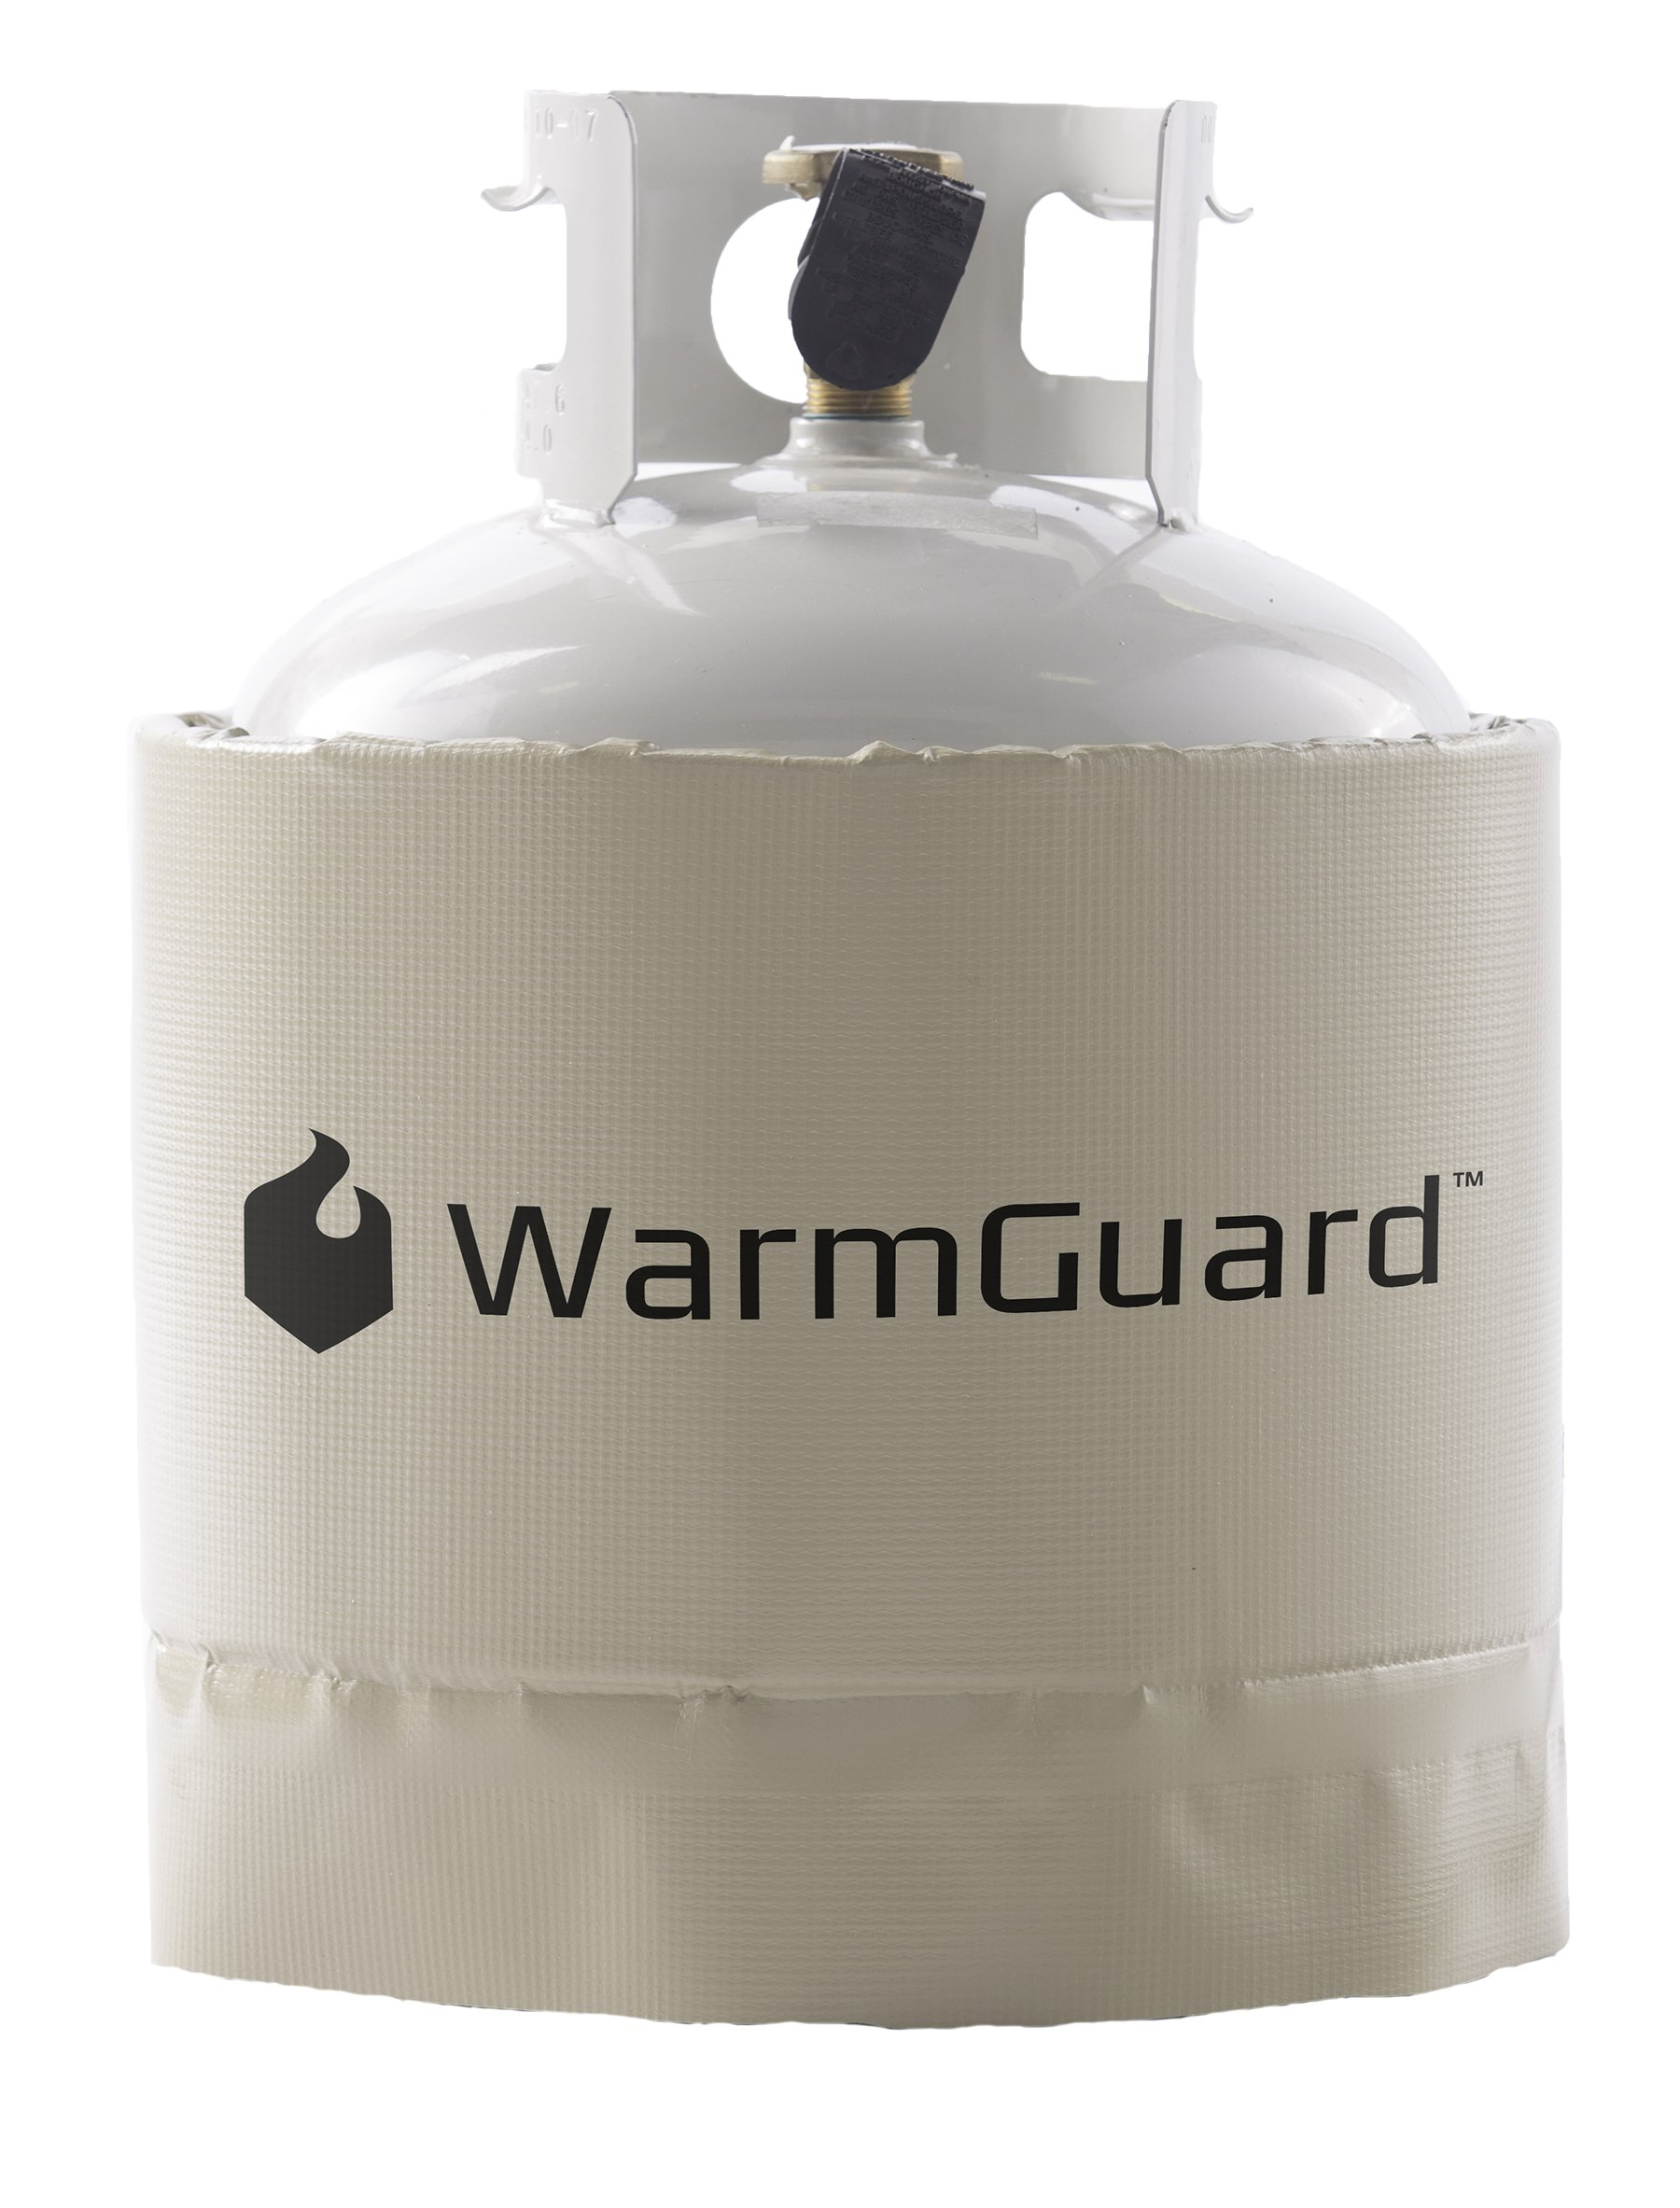 WarmGuard WG20 Insulated Band Style Gas Cylinder Warmer - Propane Heater, Fits 20, 30 & 40lb Gas Tanks, Fixed Internal Thermostat Max Temp 90 F